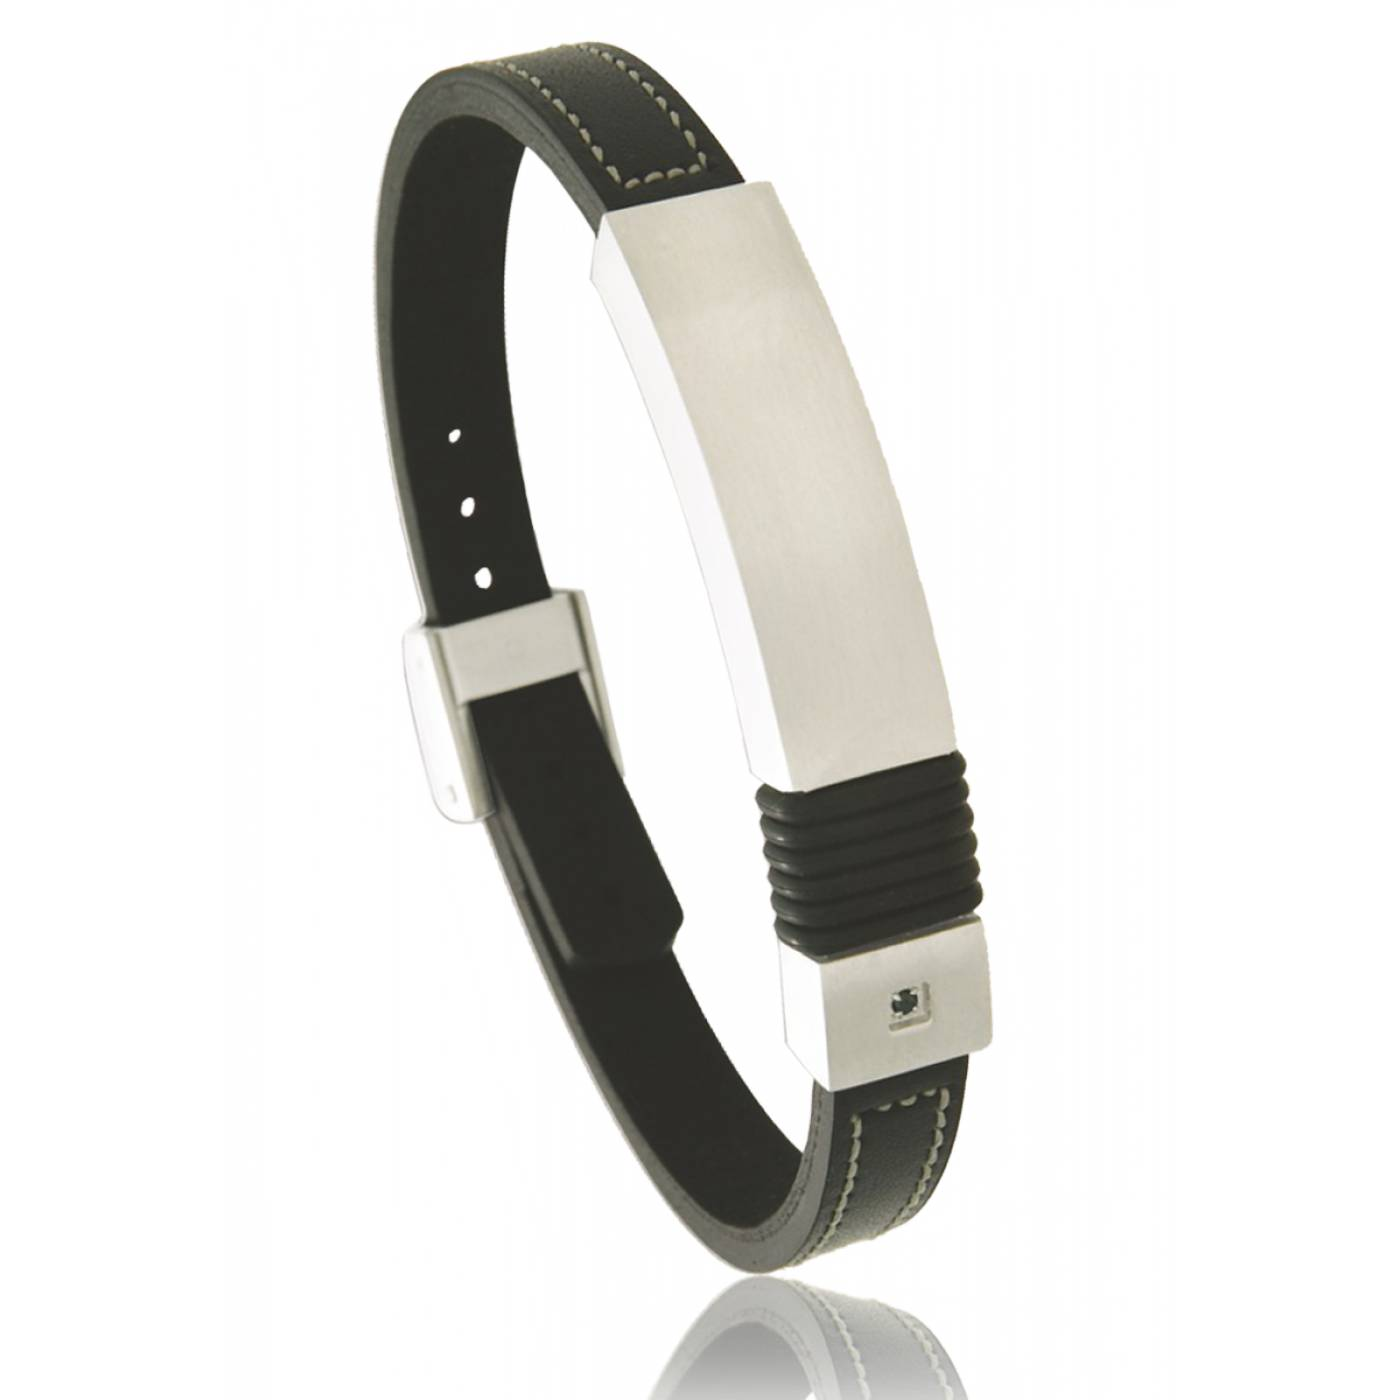 Bracelet Cuir Homme Grav Bracelet Cuir Homme Grav With